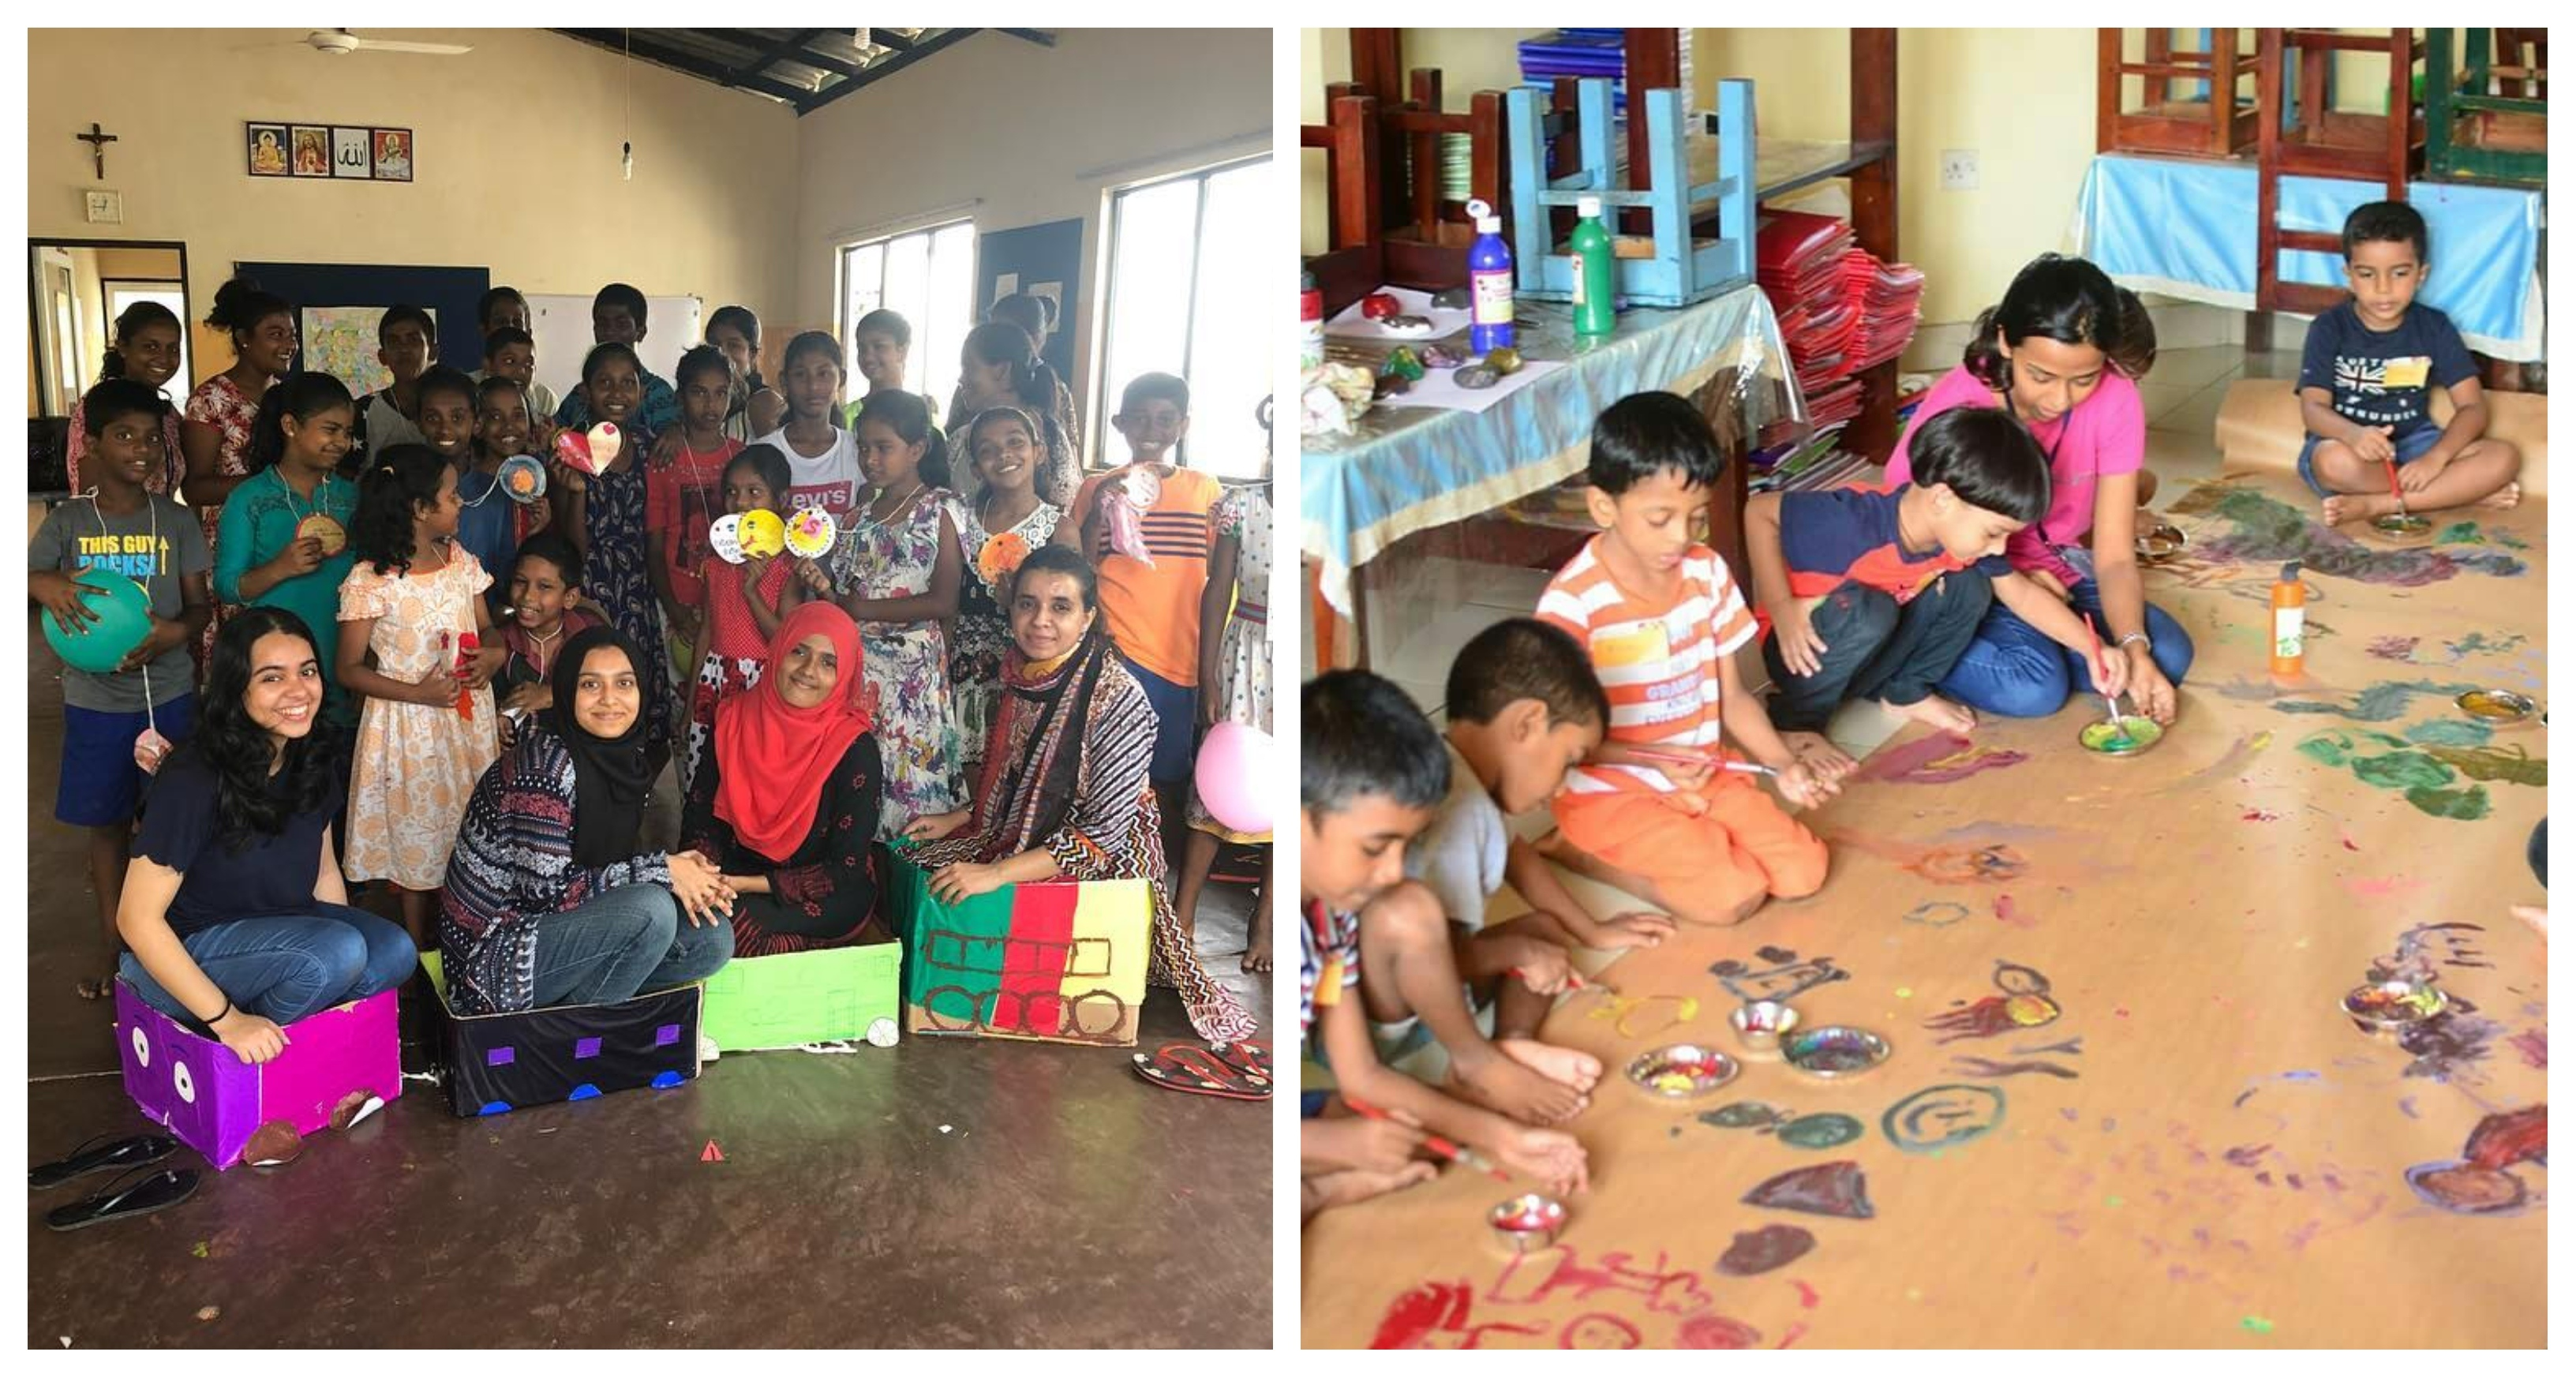 Two photographs side by side showing a CAFS kids workshop in progress: 1) five Sri Lankan children are seated on the floor painting on a roll of paper with bright paints. 2) Workshop participants are grouped together smiling at the camera and holding their creations.